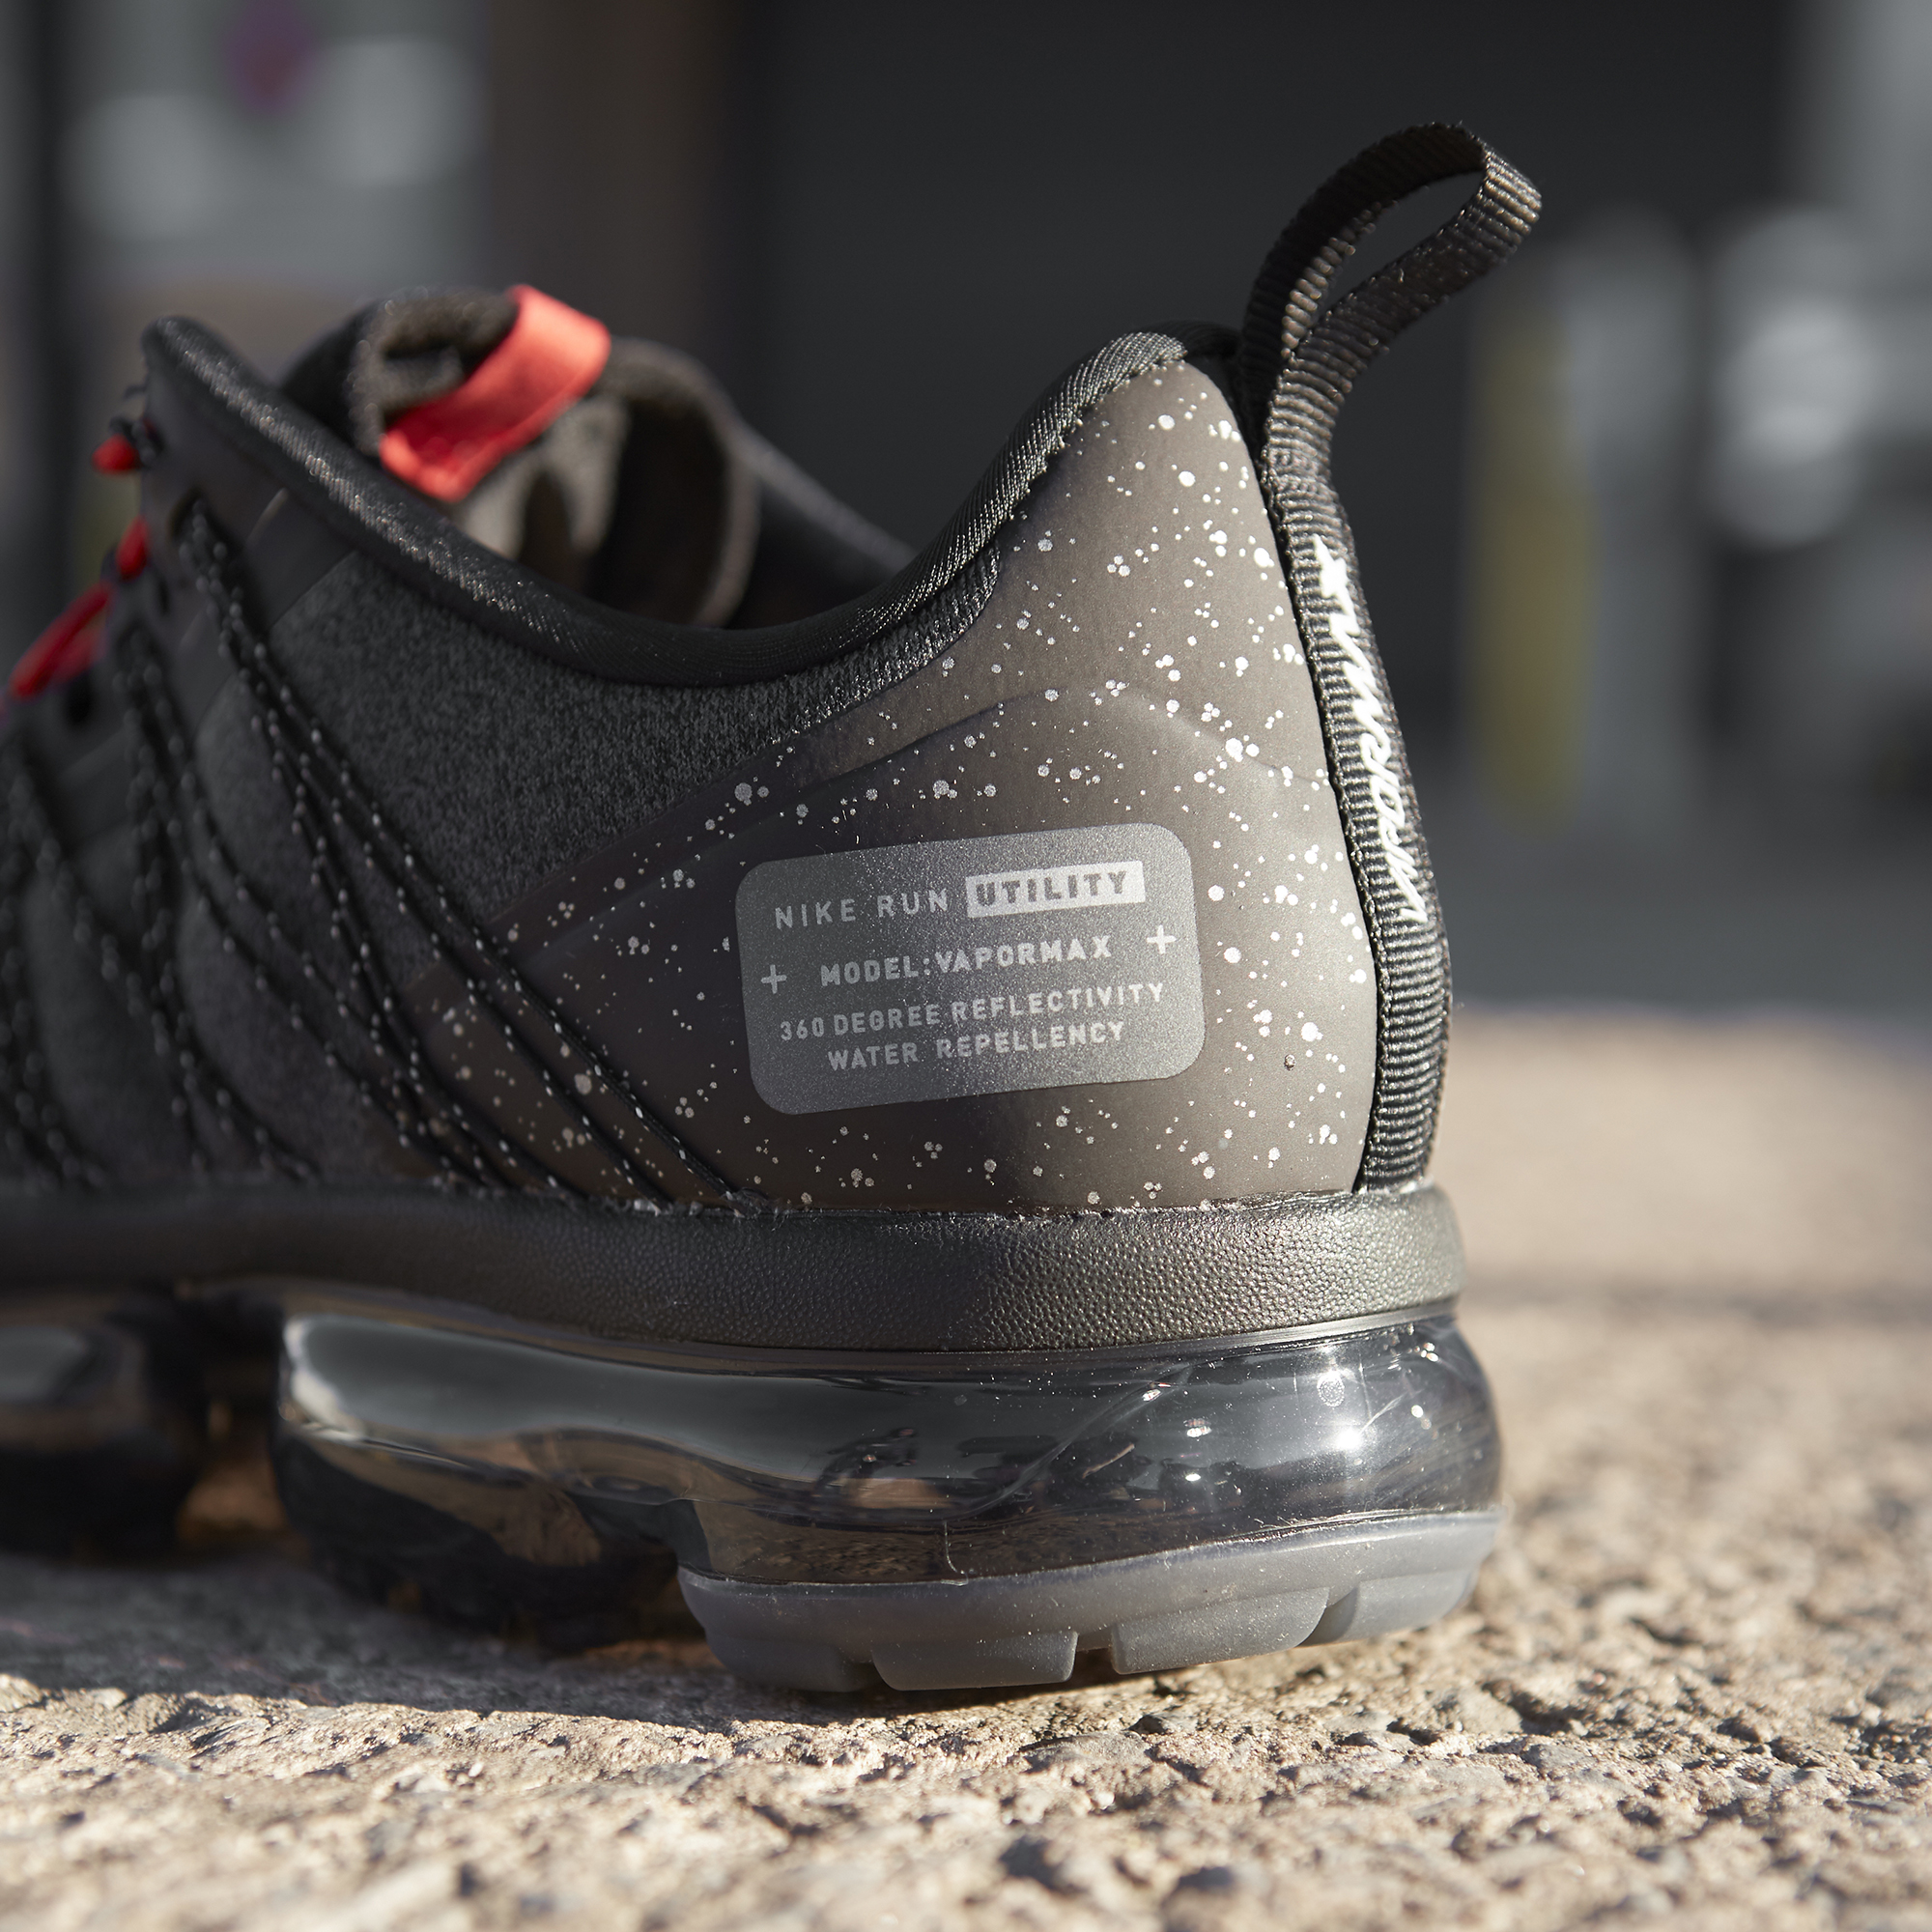 9348257fe027 The Nike Air VaporMax Run Utility will be available via the size  Previews  App and in size  stores on Thursday 1st November priced at £170.